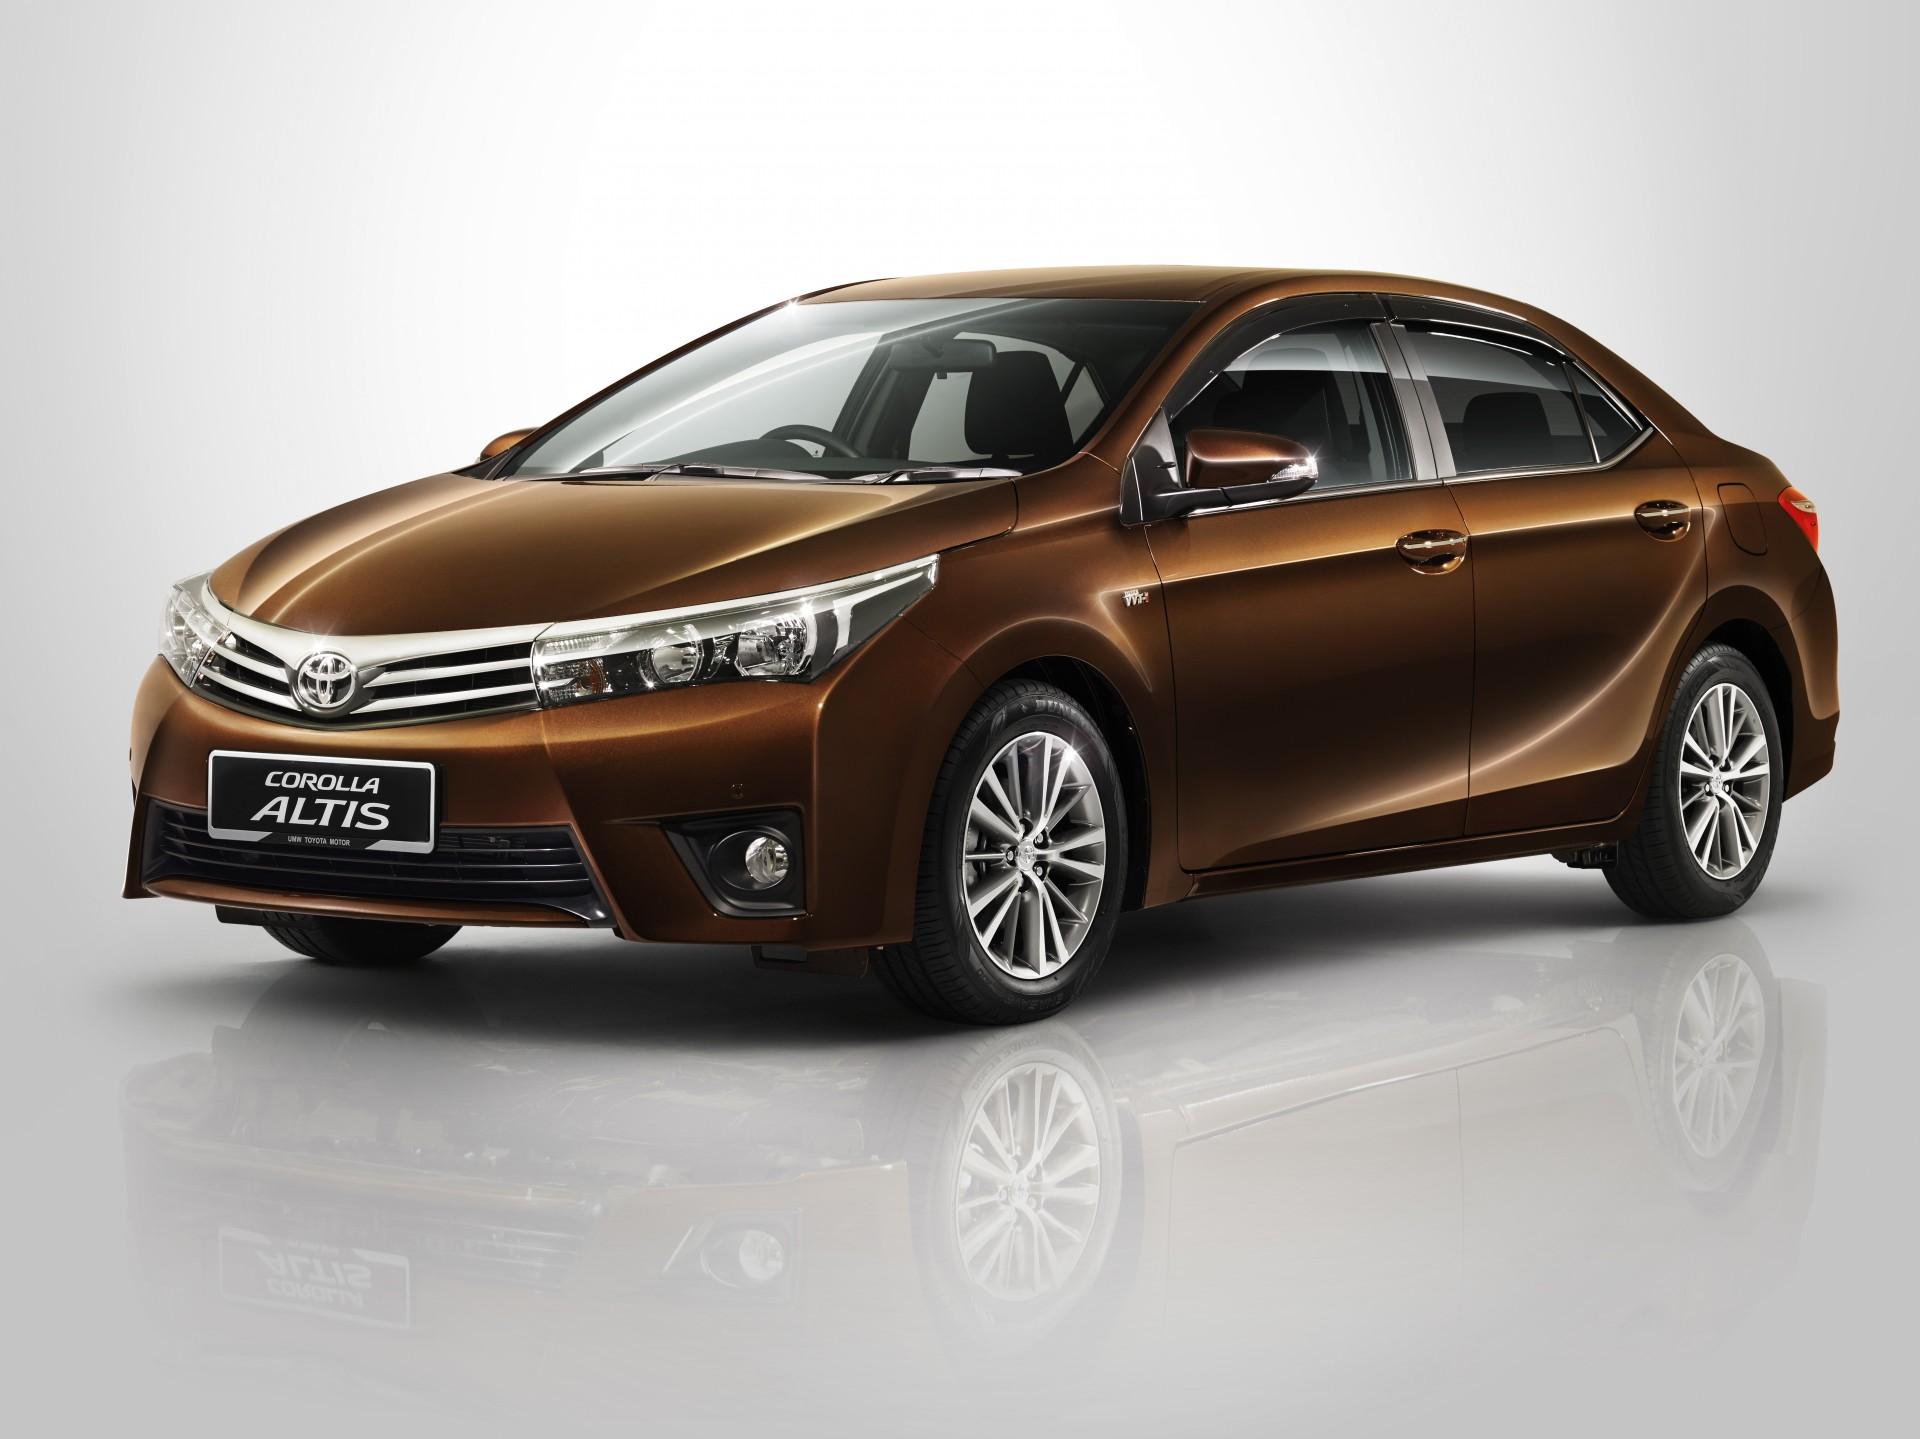 new corolla altis launch date harga mobil grand avanza tahun 2016 11th generation toyota launched autofreaks com